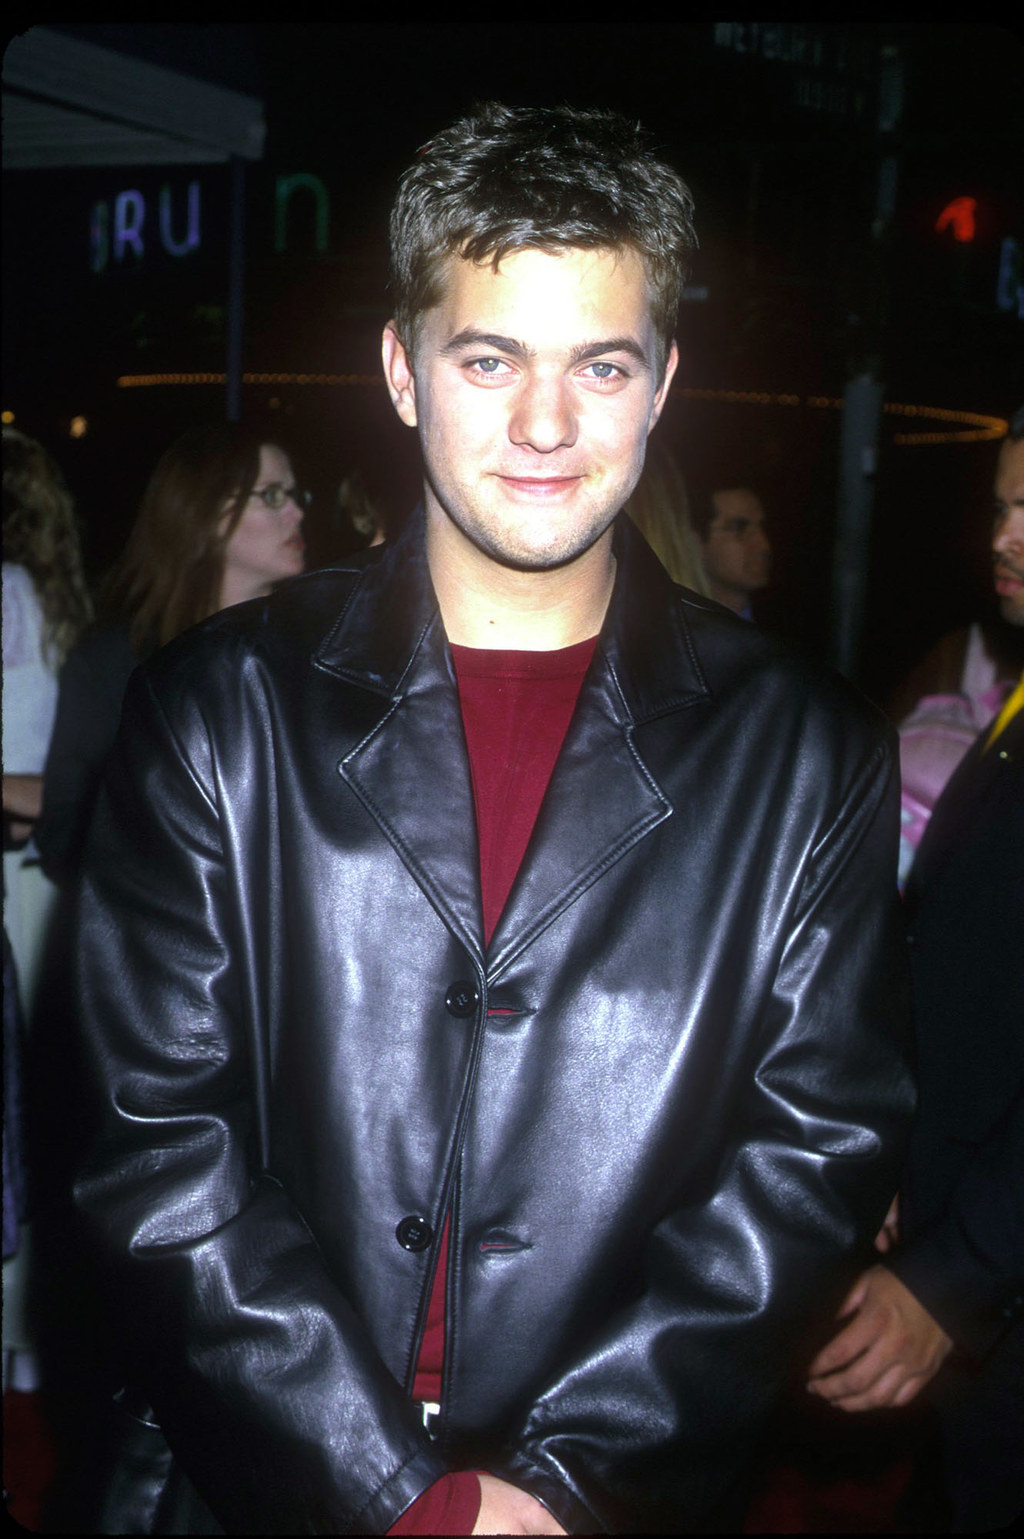 in a large pleather jacket